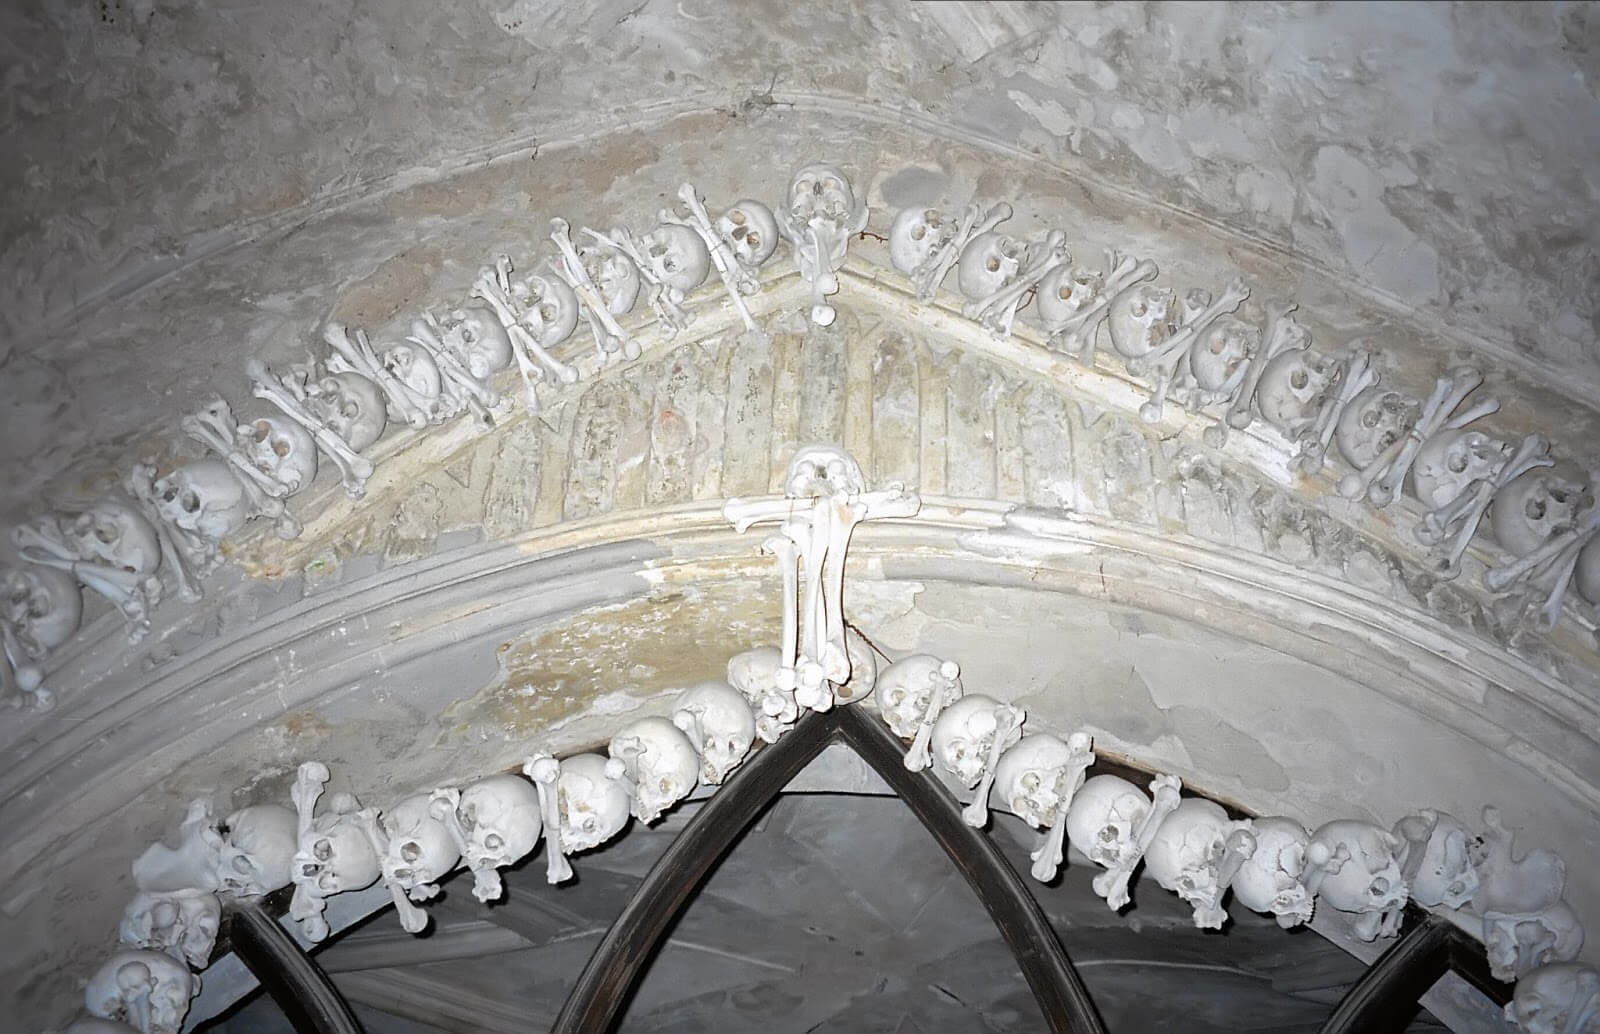 Sedlec Ossuary in Kutna Hora, Czech Republic